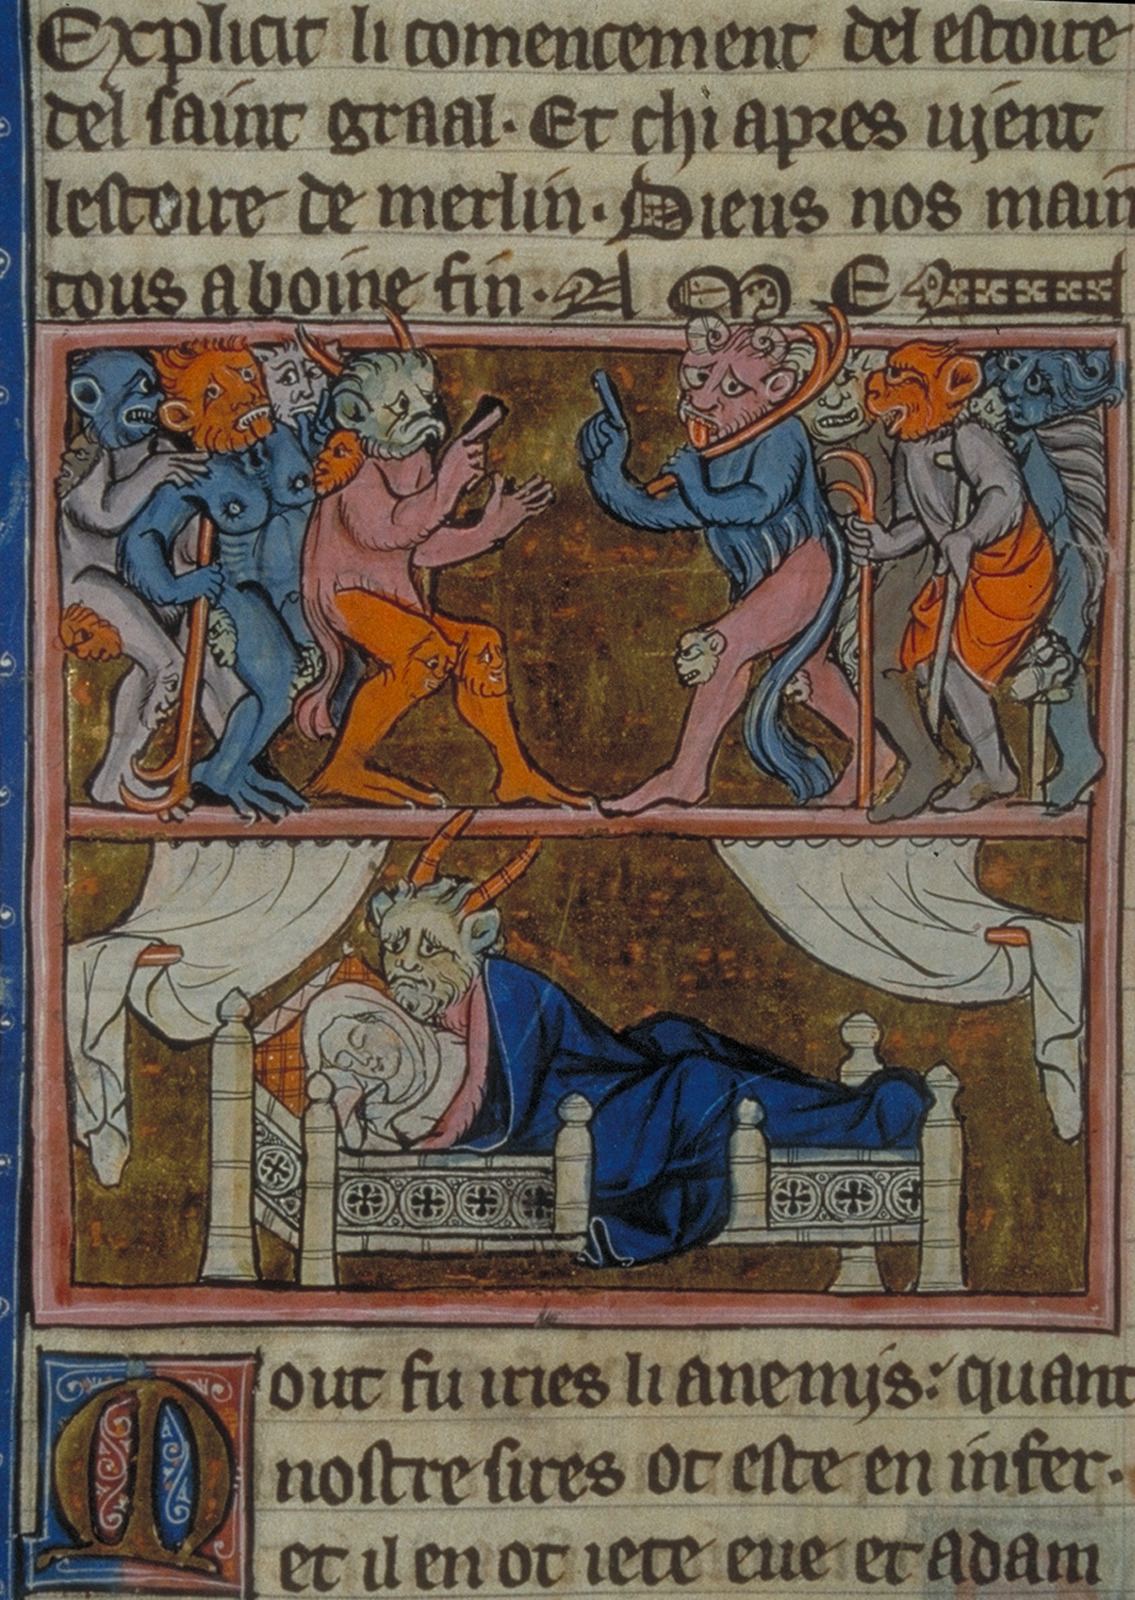 THE CONCEPTION OF MERLIN 2 Robert de Boron, L'Estoire de Merlin, Northern France ca. 1280-1290. Paris, BNF, Fr. 95, fol. 113v